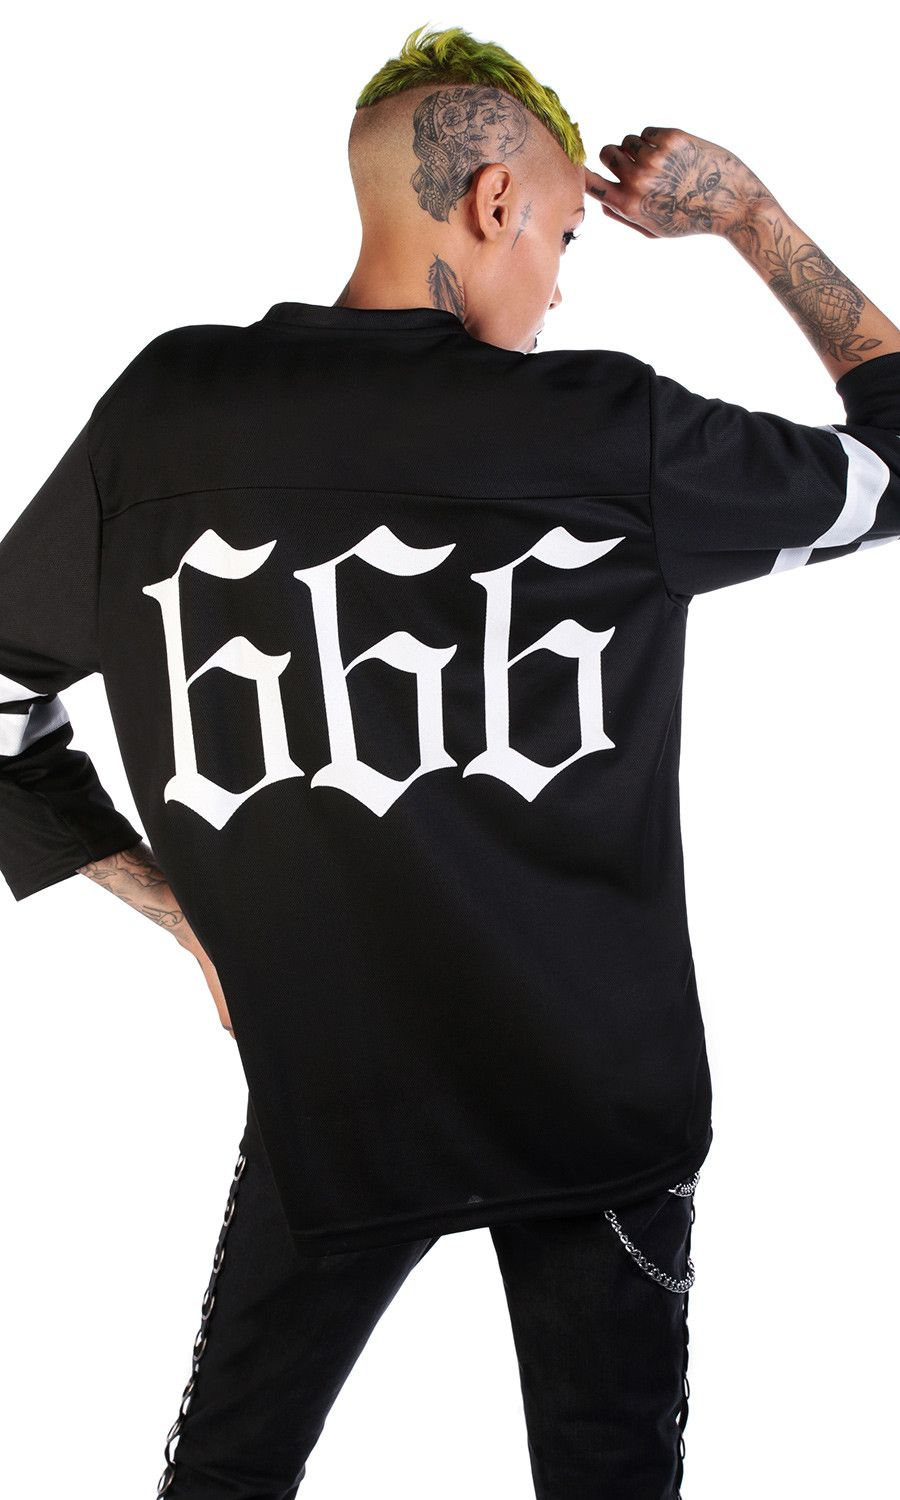 Shop the finest goth and grunge fashions! - Disturbia Clothing